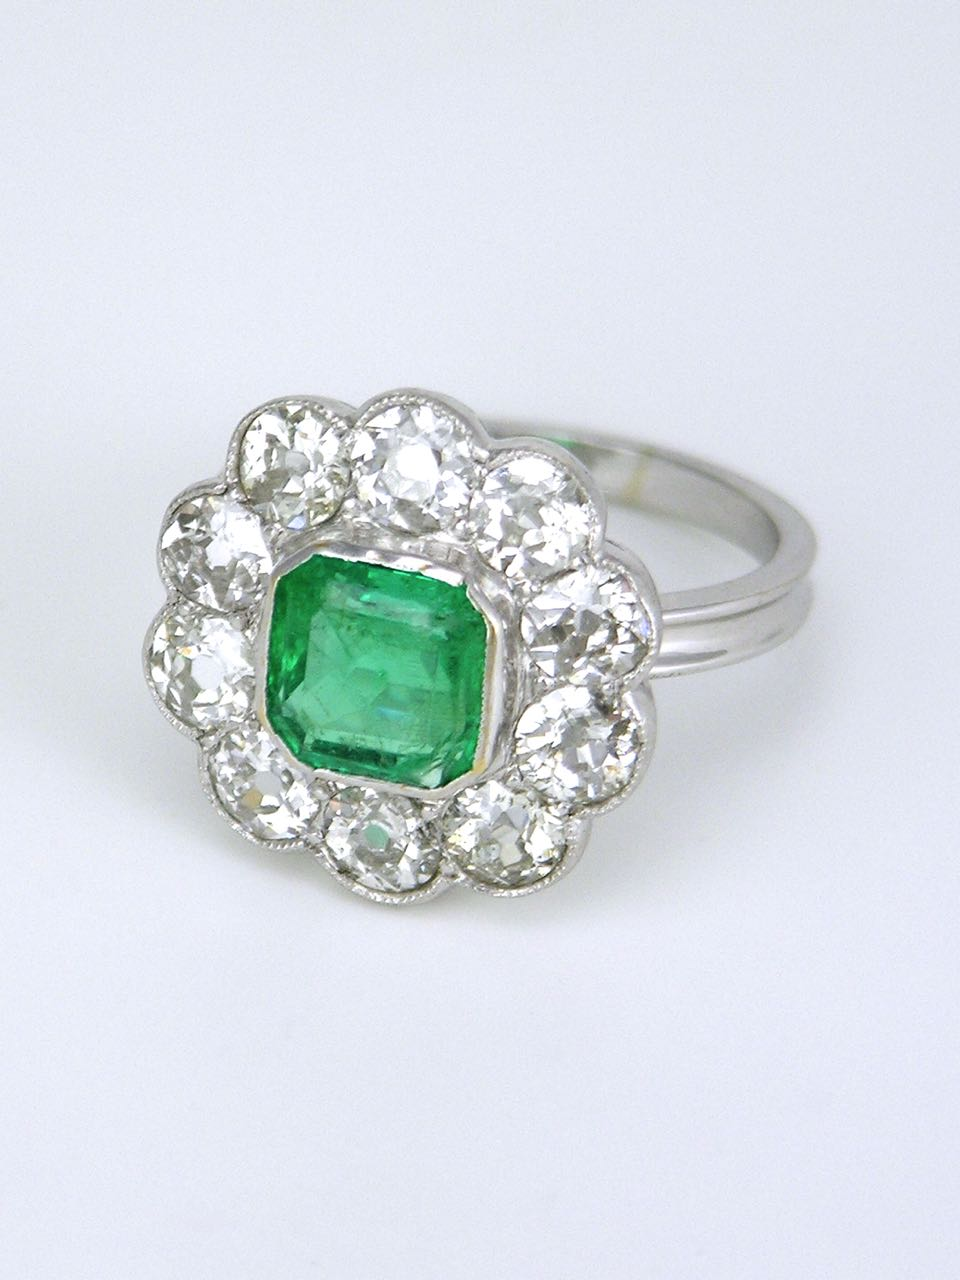 Vintage 18k White Gold Emerald and Diamond Cluster Ring 1940s